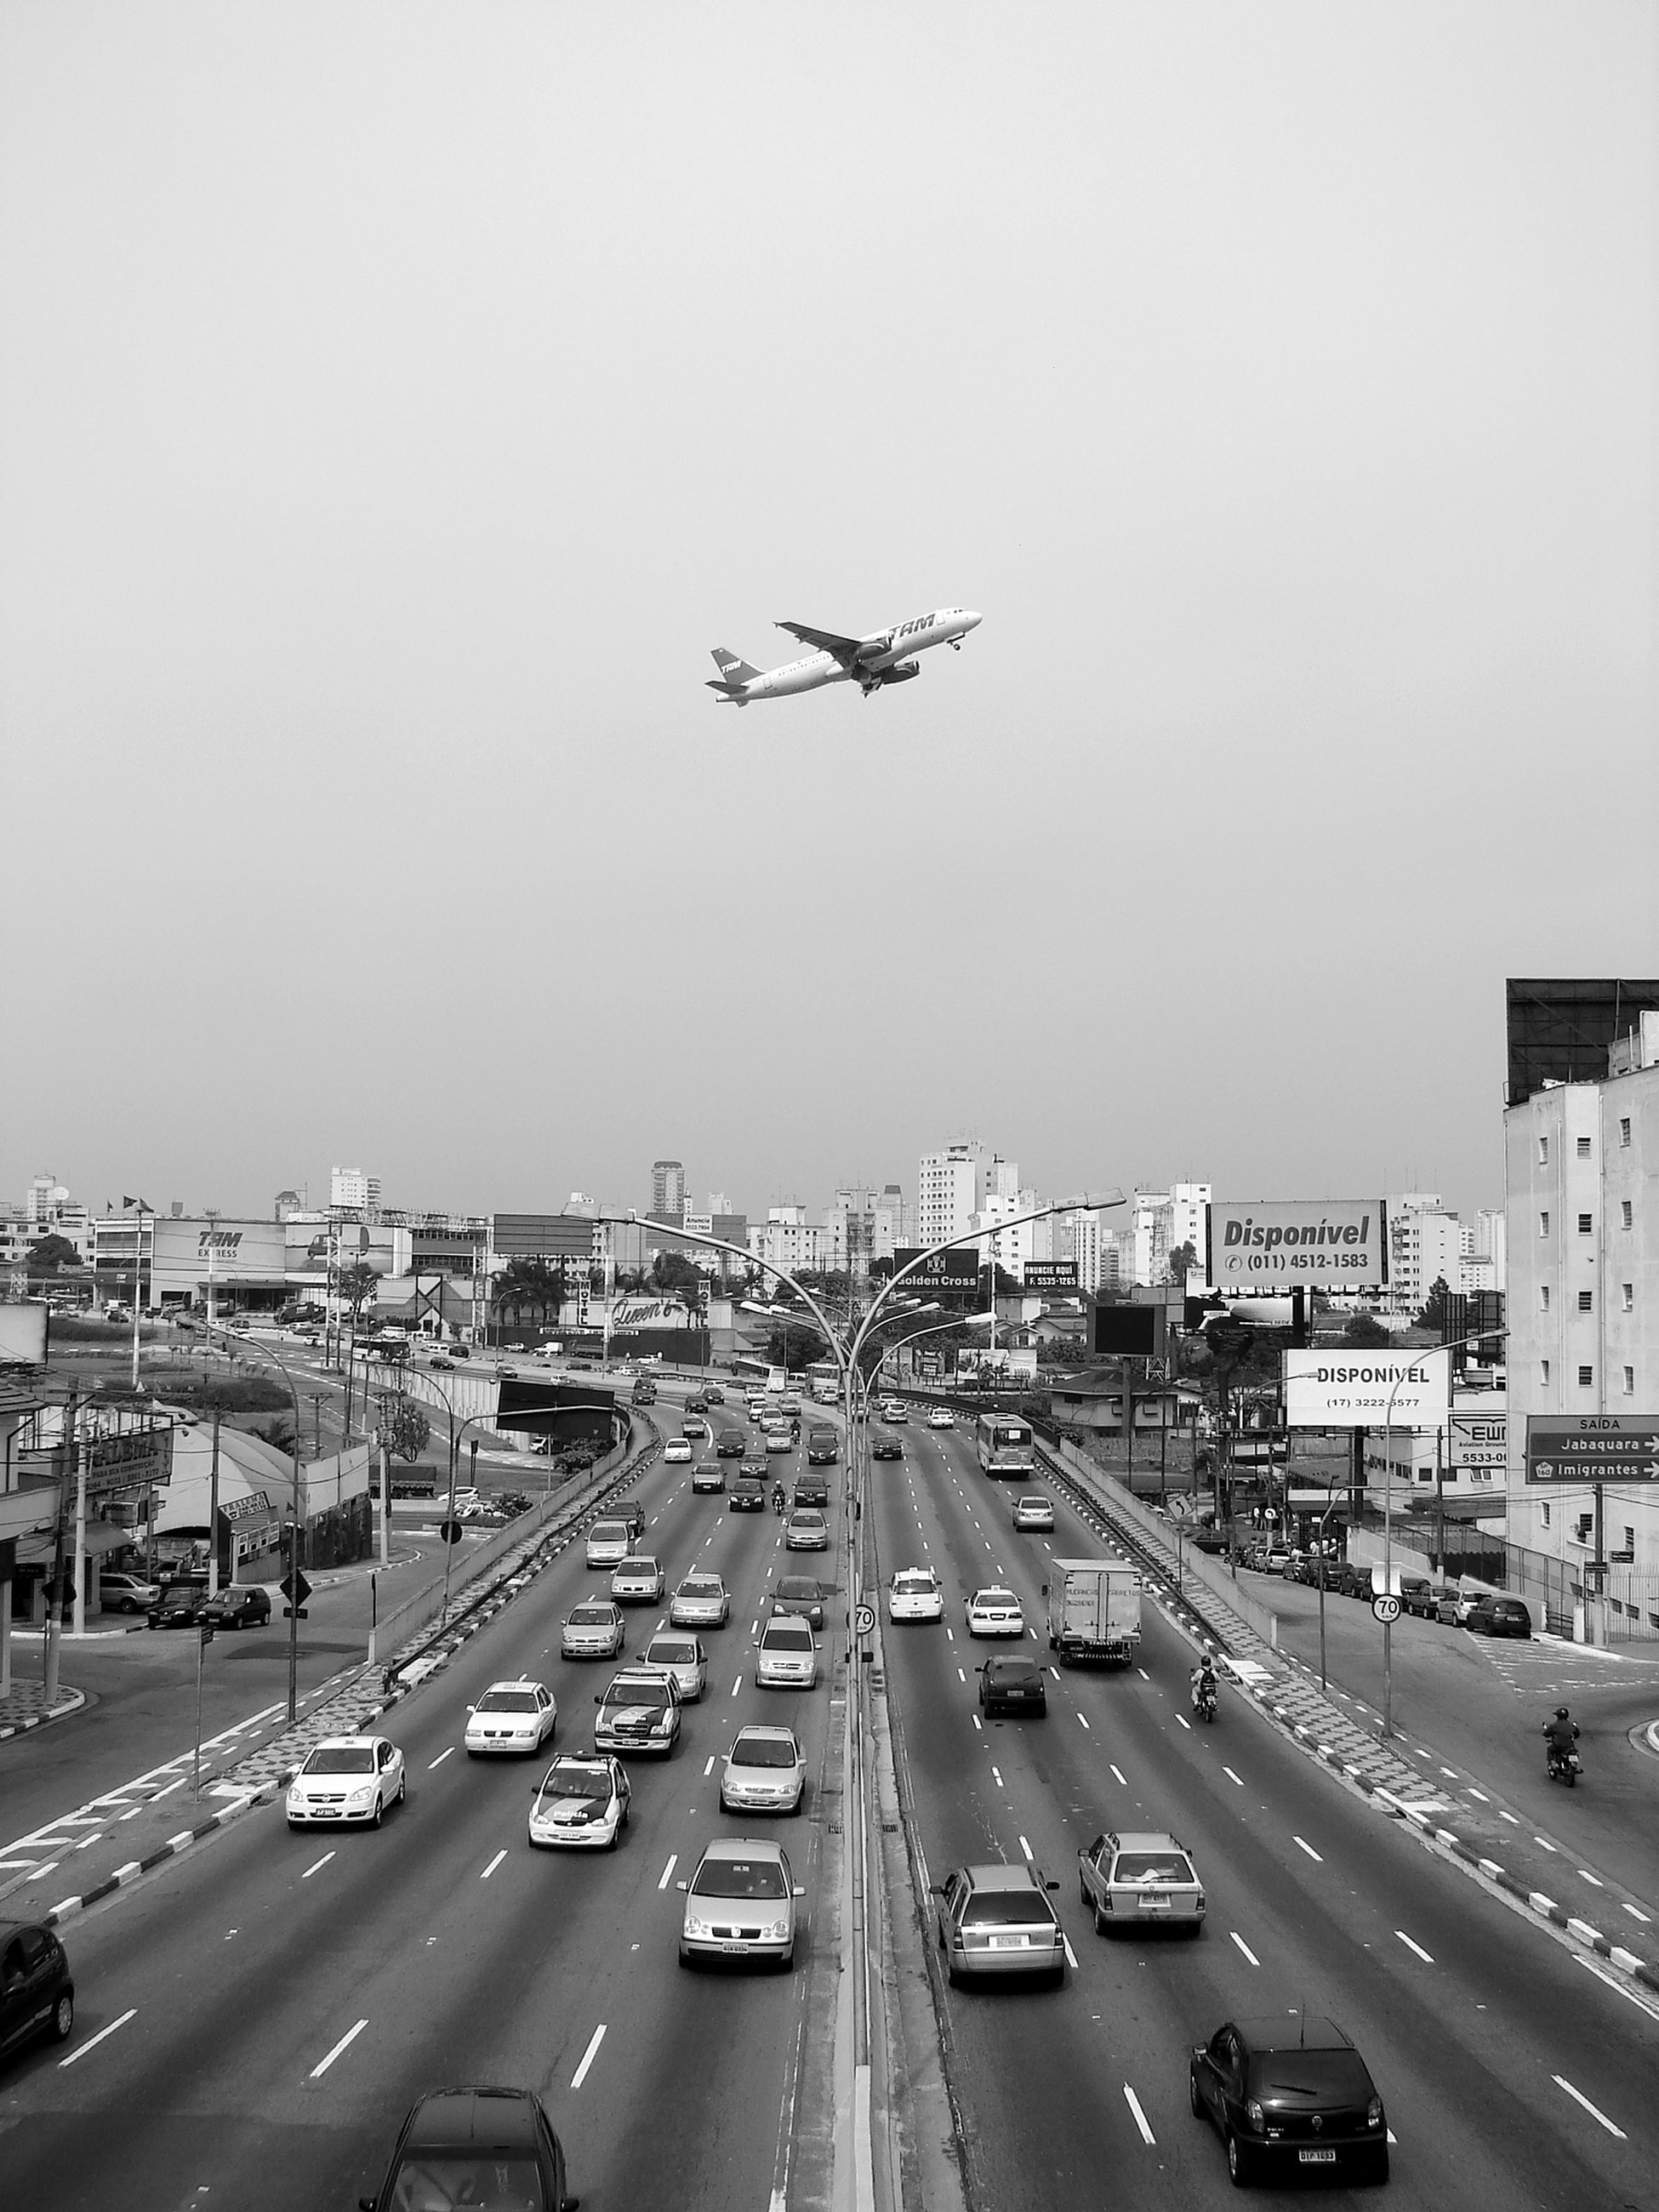 transportation, mode of transportation, motor vehicle, car, city, air vehicle, land vehicle, sky, road, motion, airplane, street, on the move, travel, no people, mid-air, day, nature, flying, traffic, cityscape